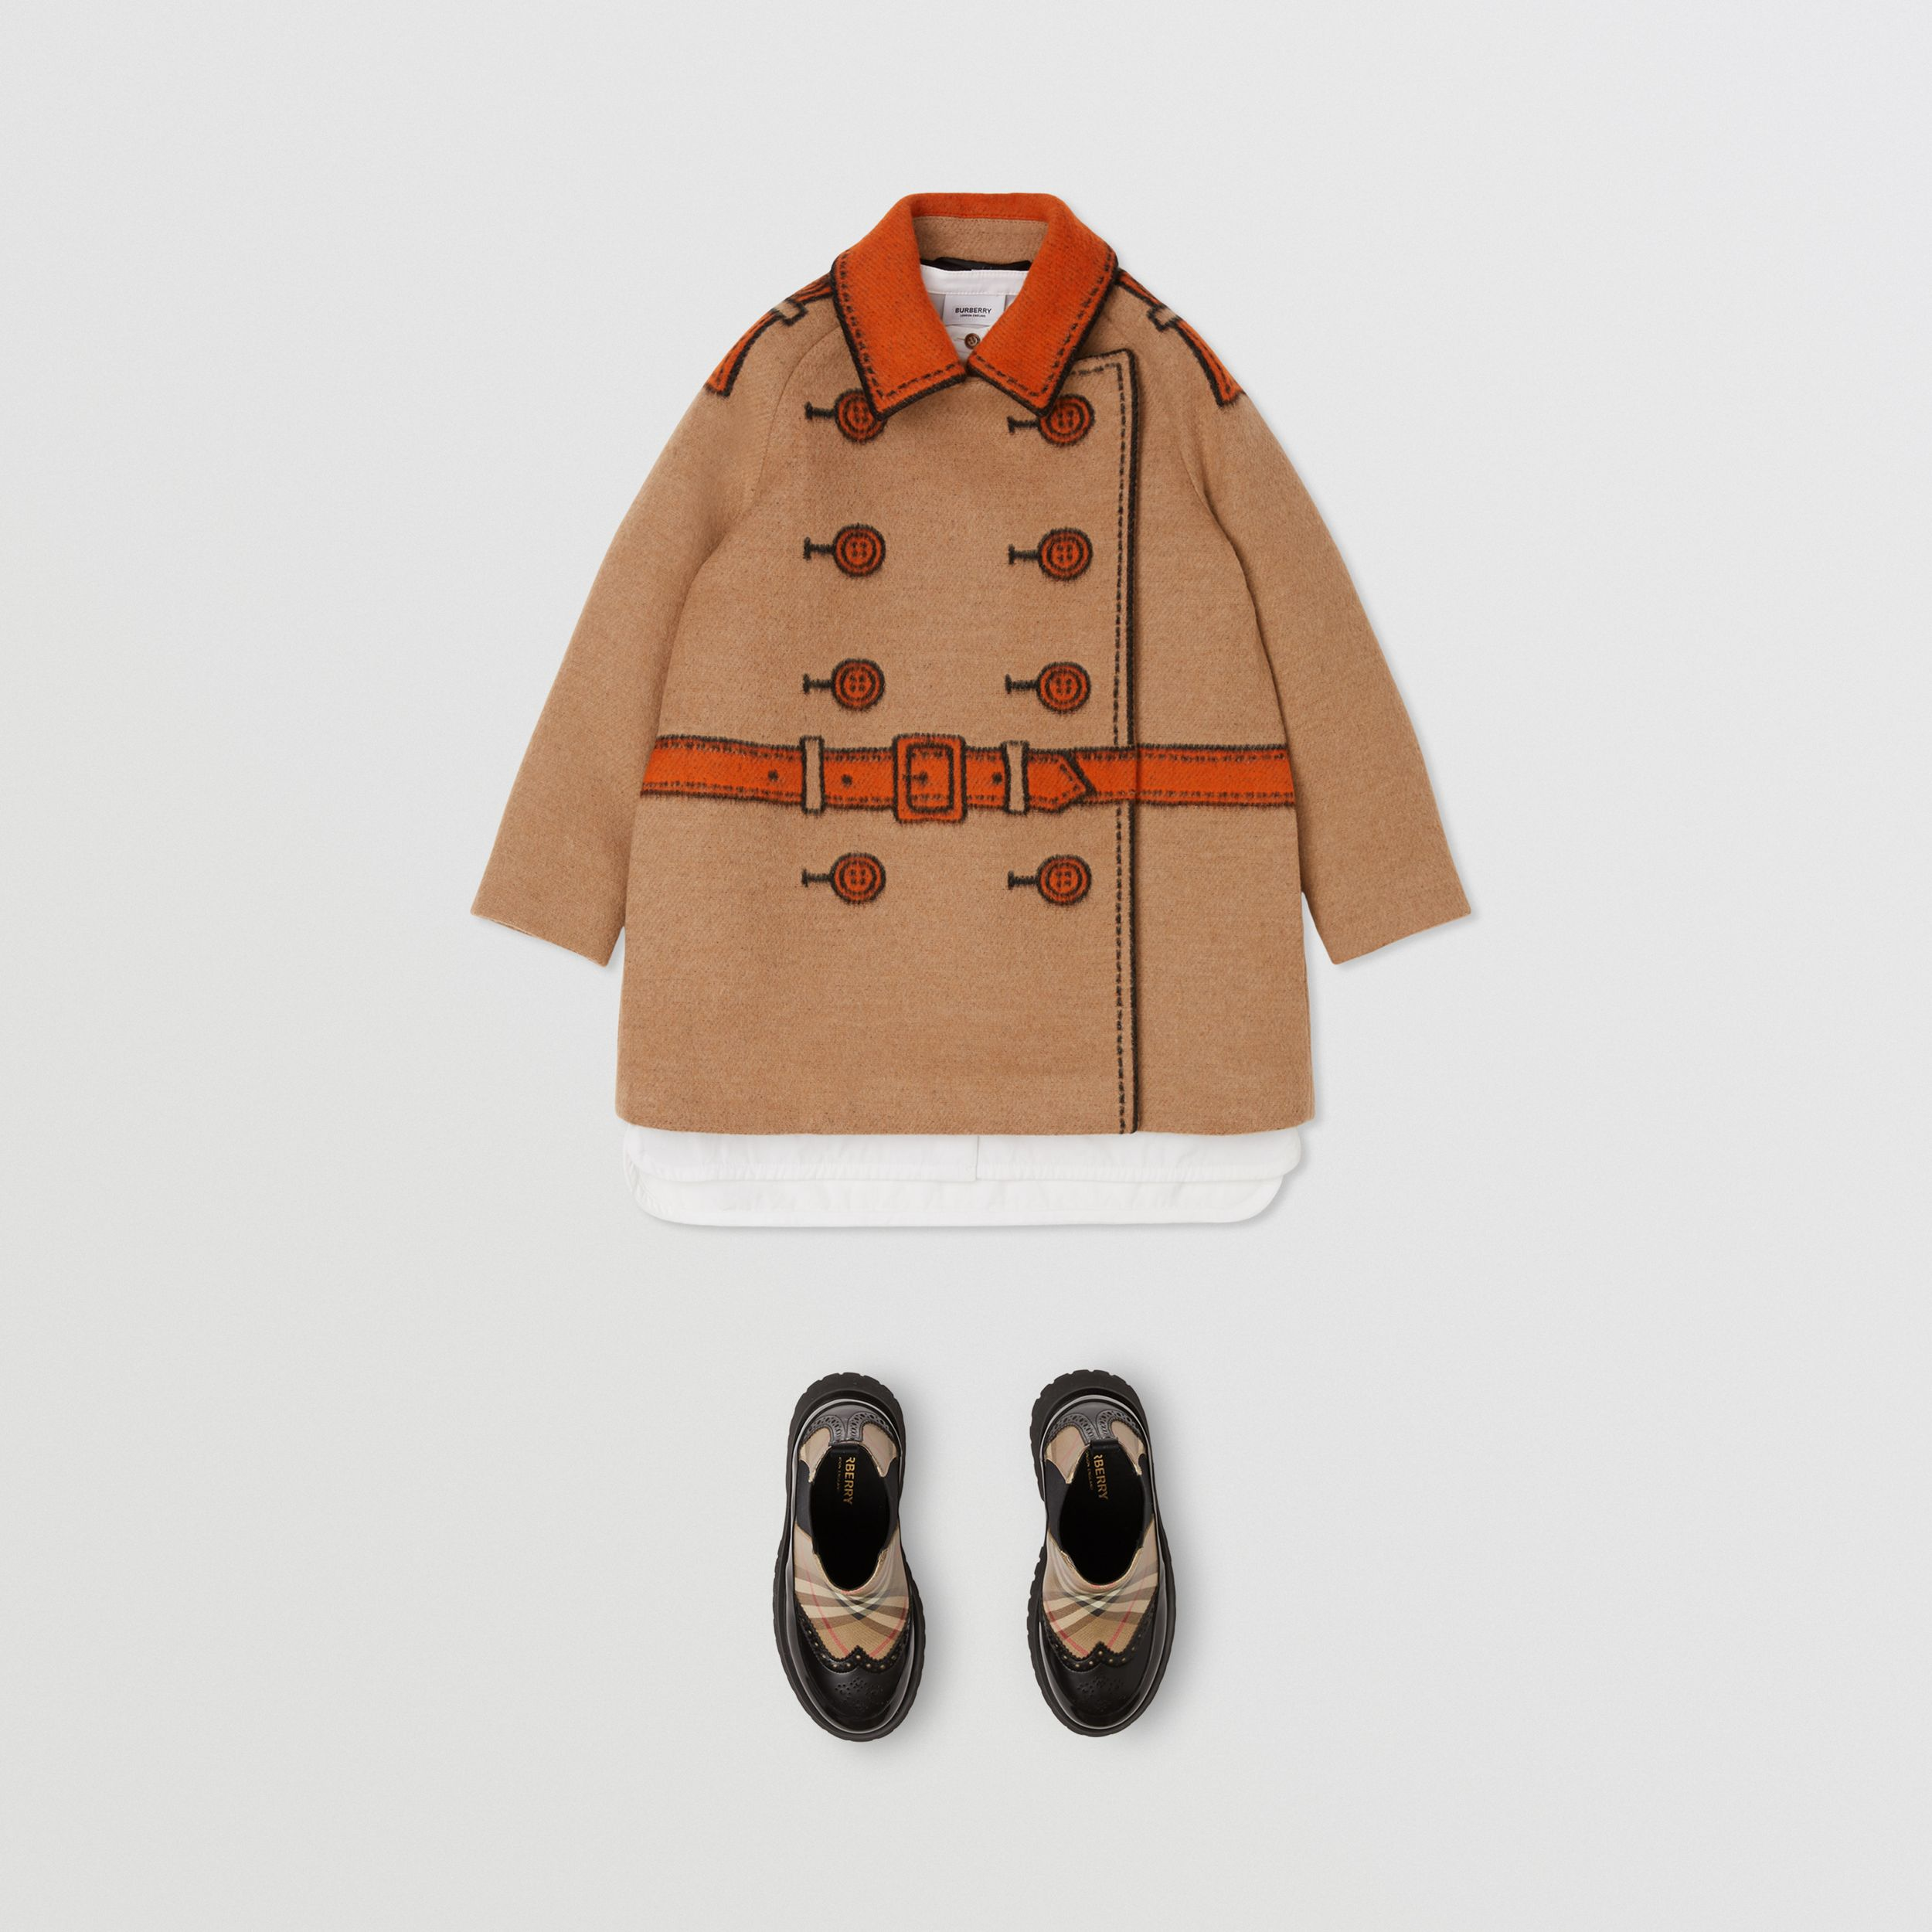 Trompe L'Oeil Wool Jacquard Coat in Camel | Burberry - 3